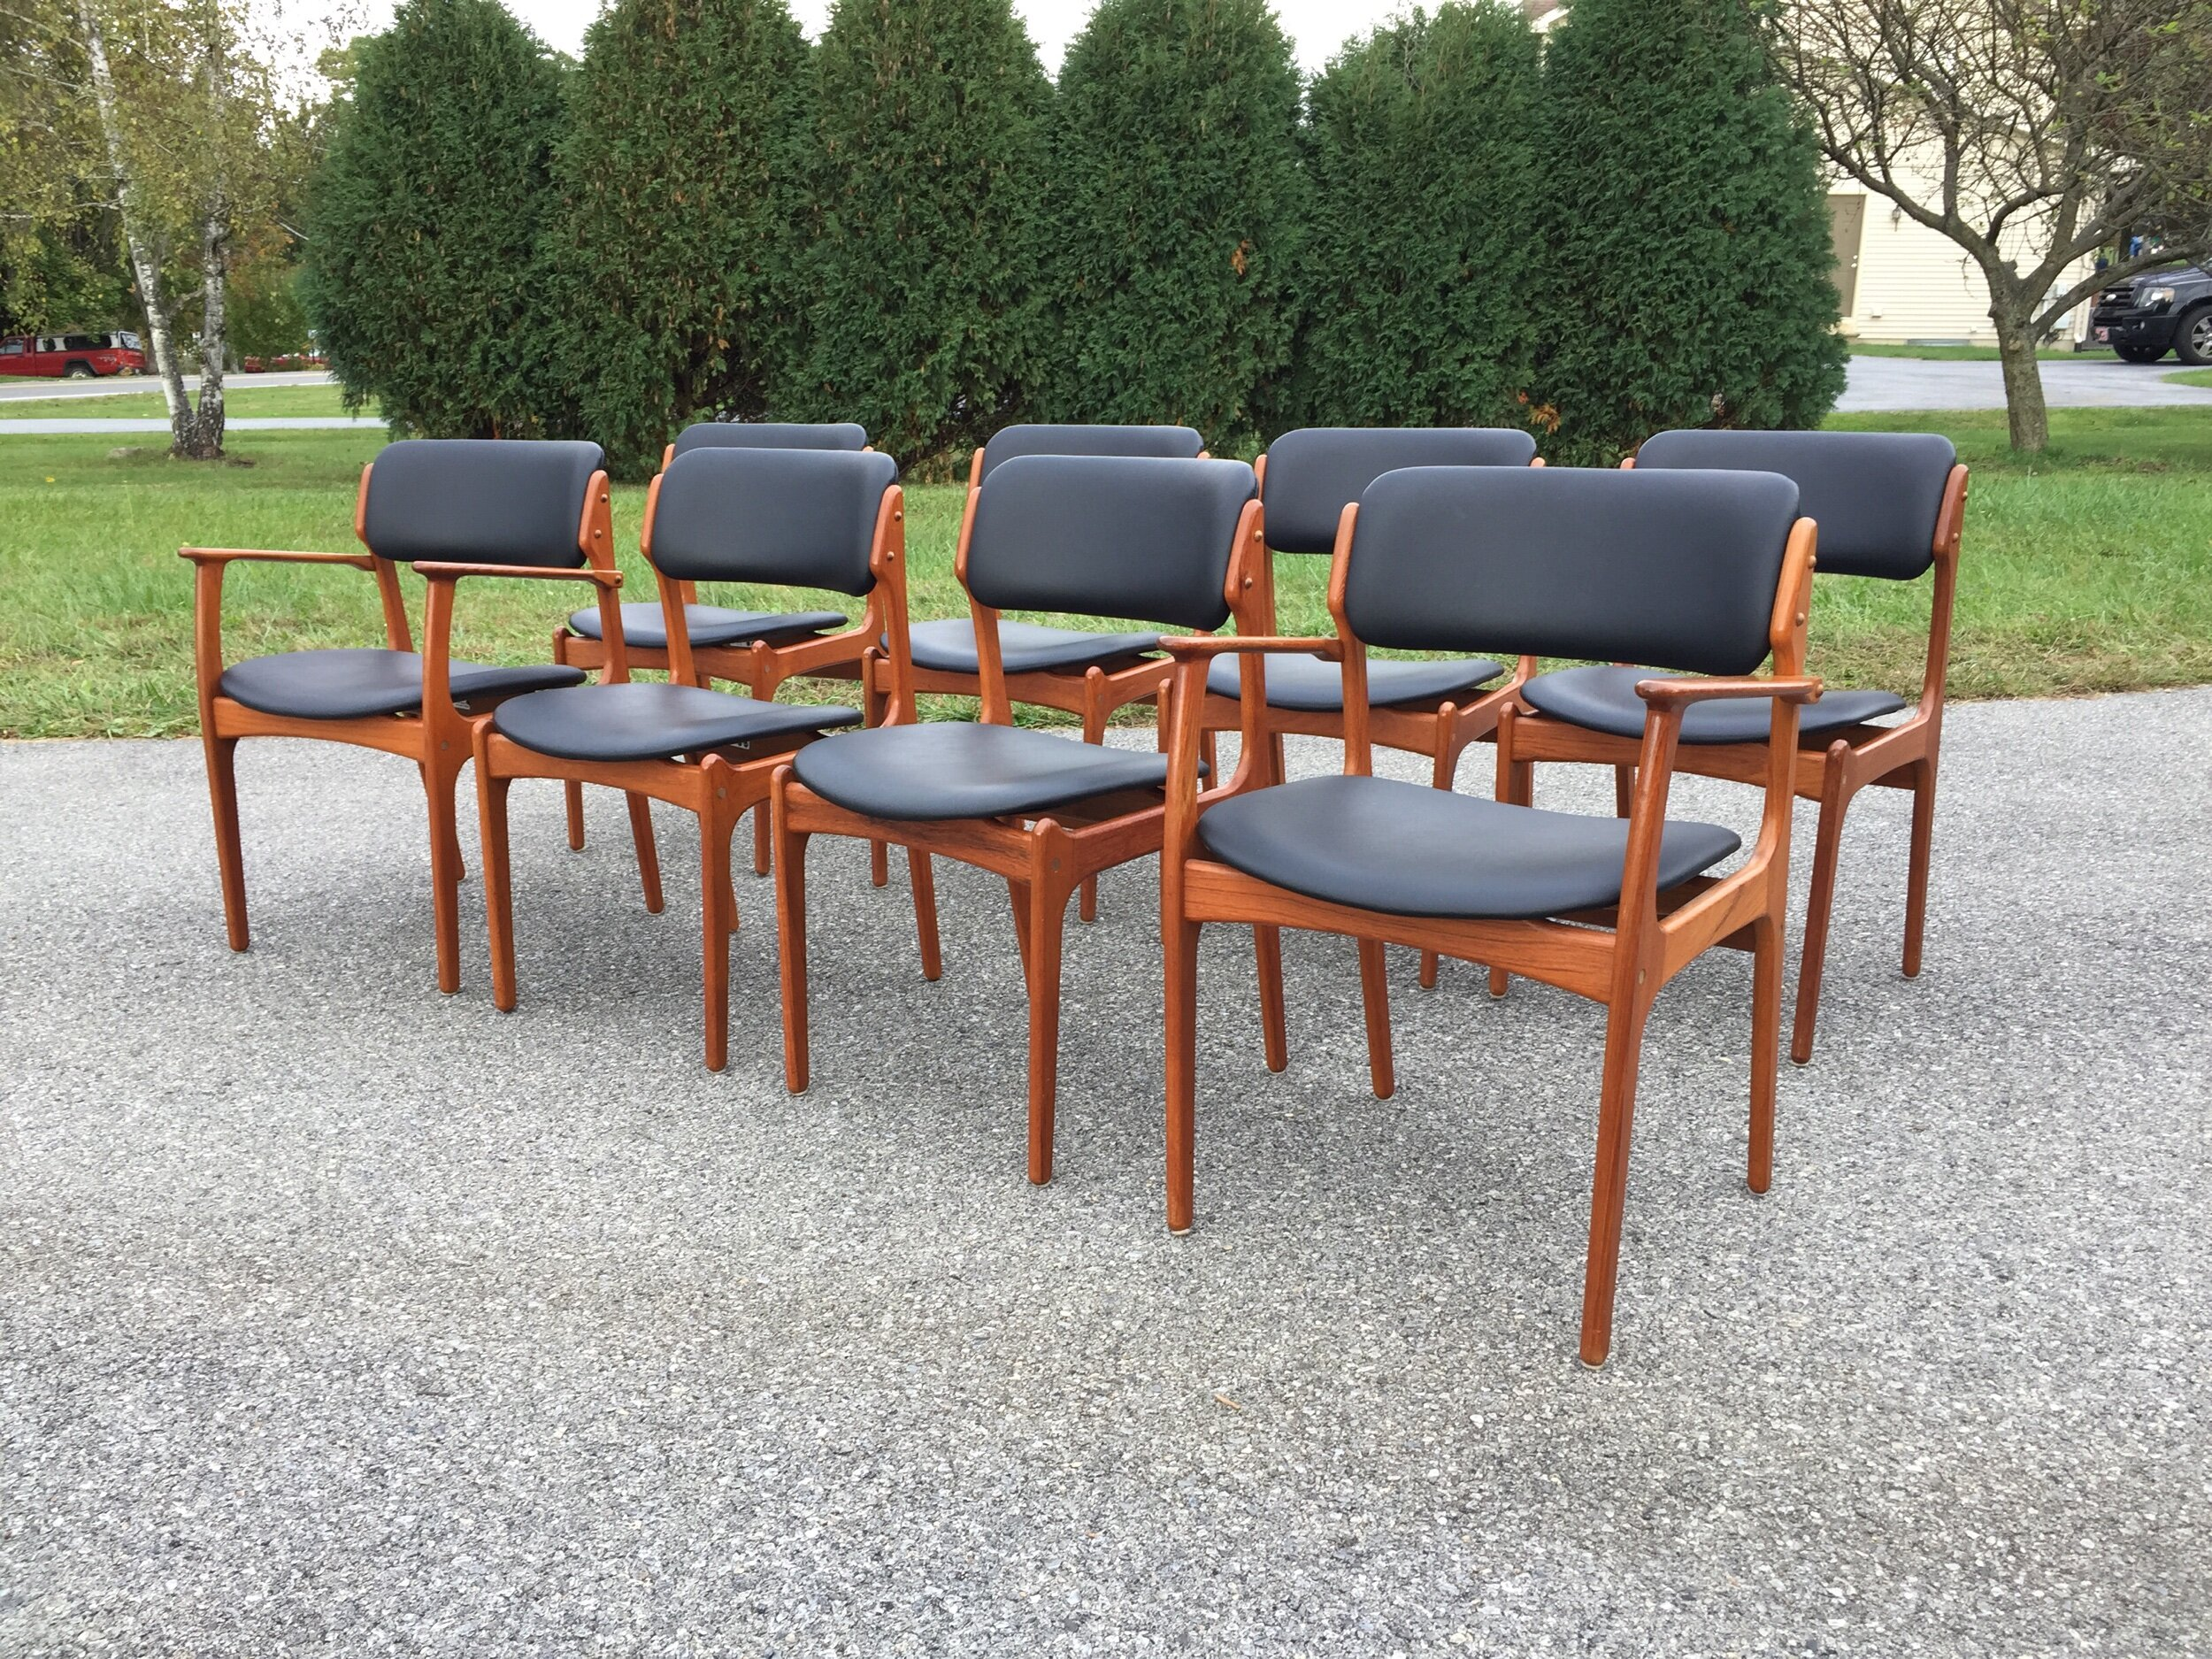 JUst beAutiful! Aged teak with lovely joinery, extra soft foam work makes them super comfy and unlike most Danish, they have very large seats! Worth the splurge!